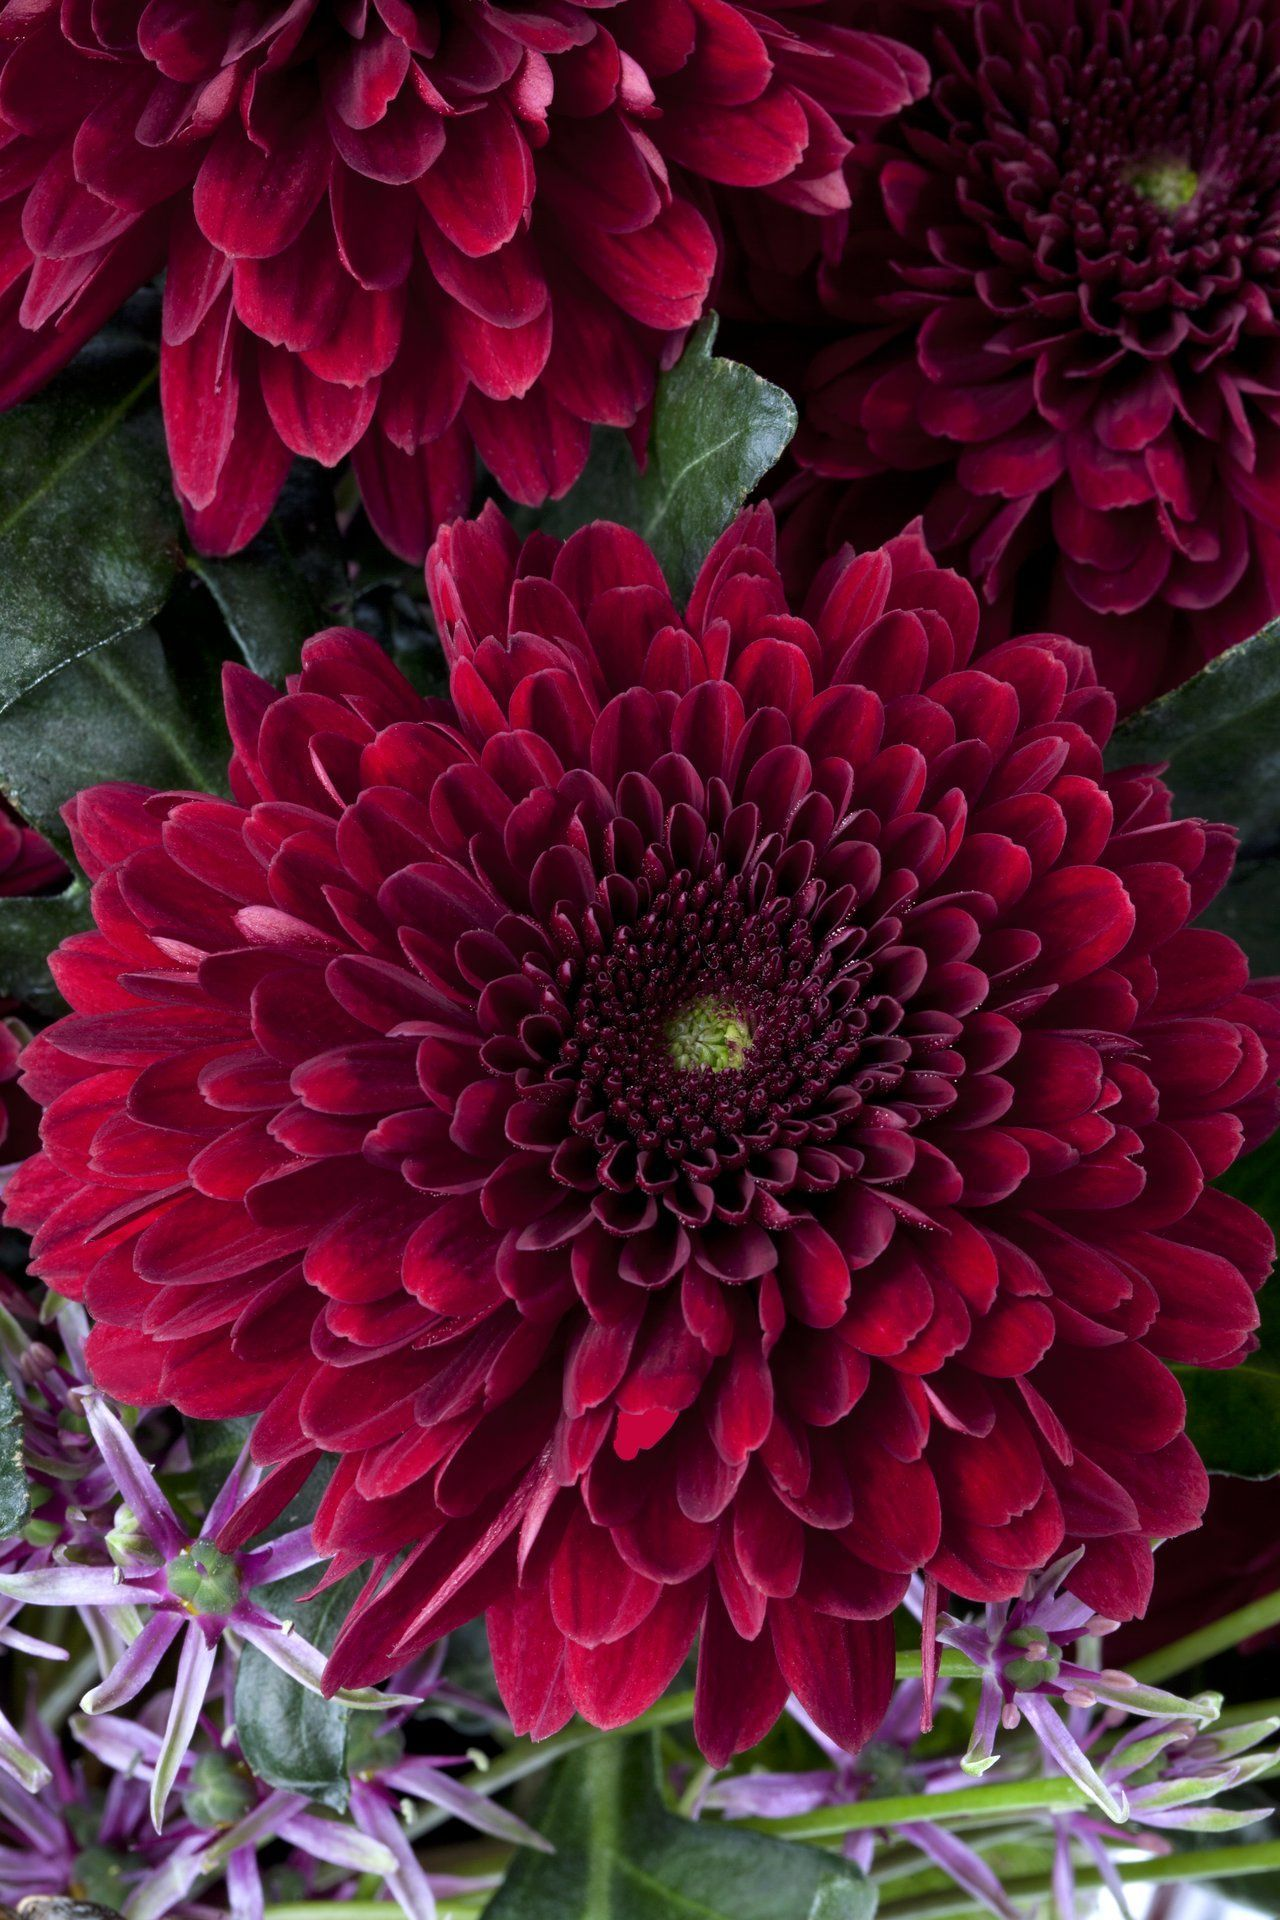 From the Language of Flowers, as a birthday month,